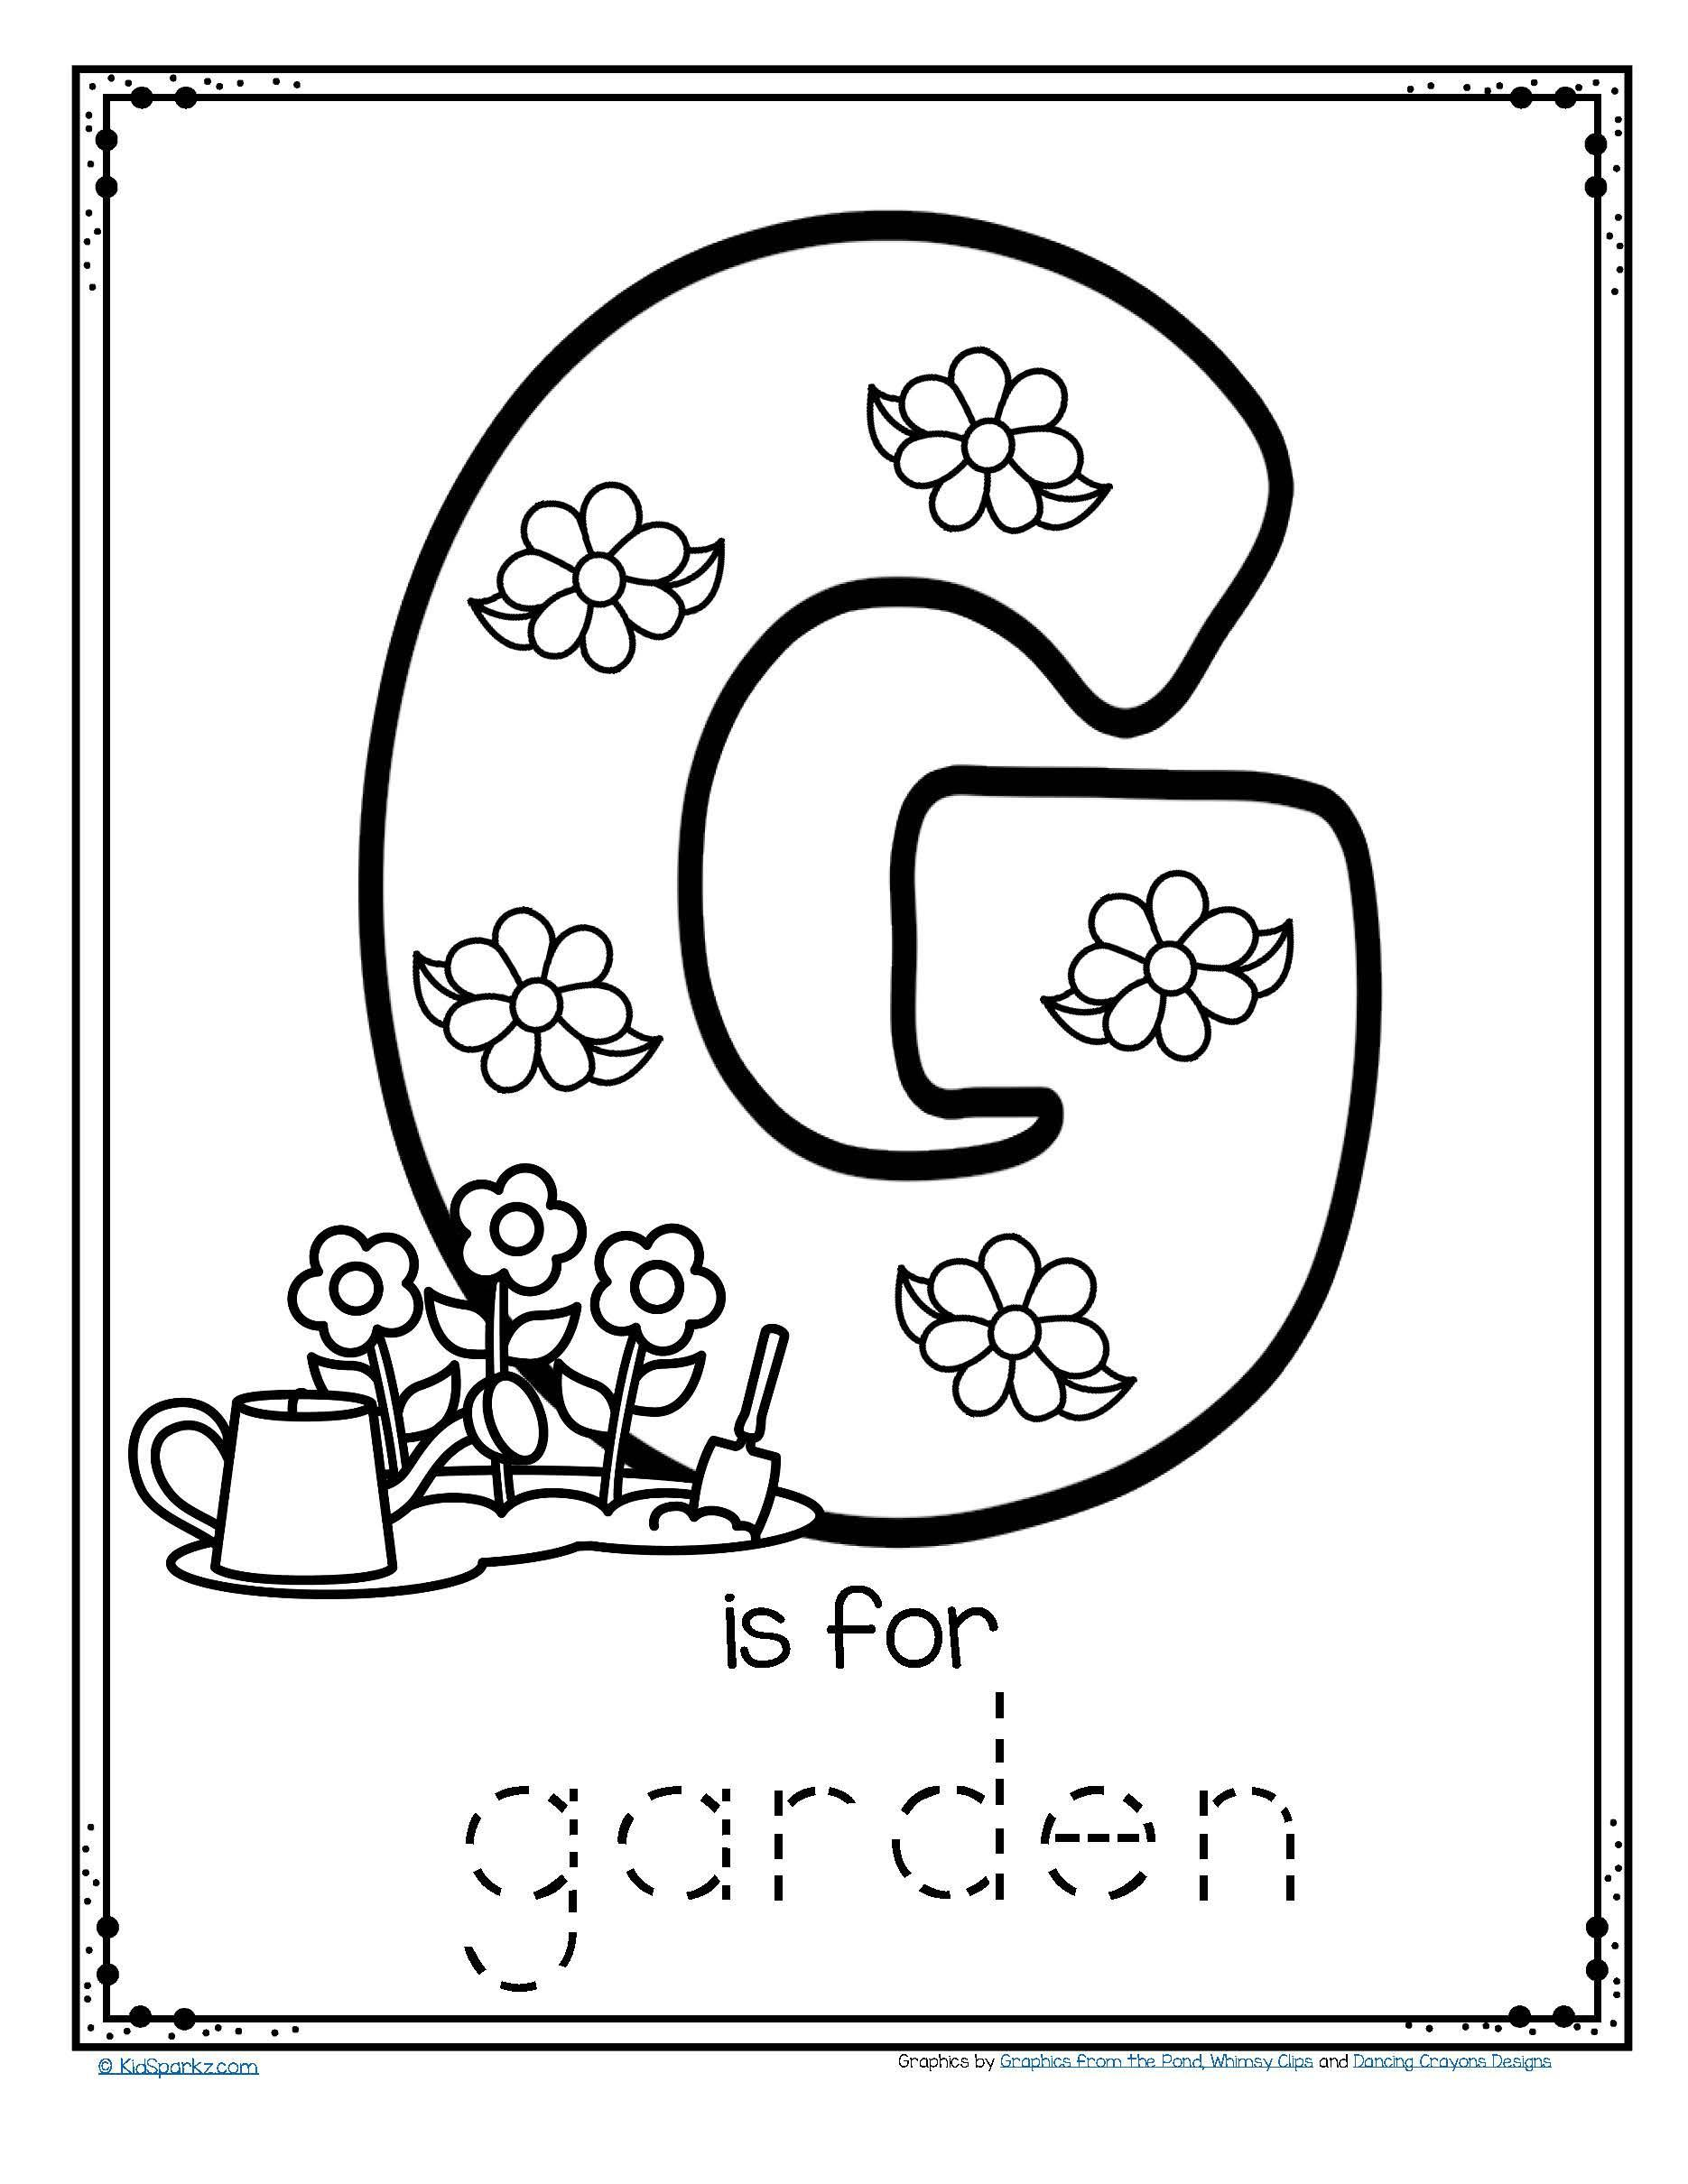 letter g coloring pages preschool free letter g printable coloring pages for kindergarten preschool letter coloring pages g